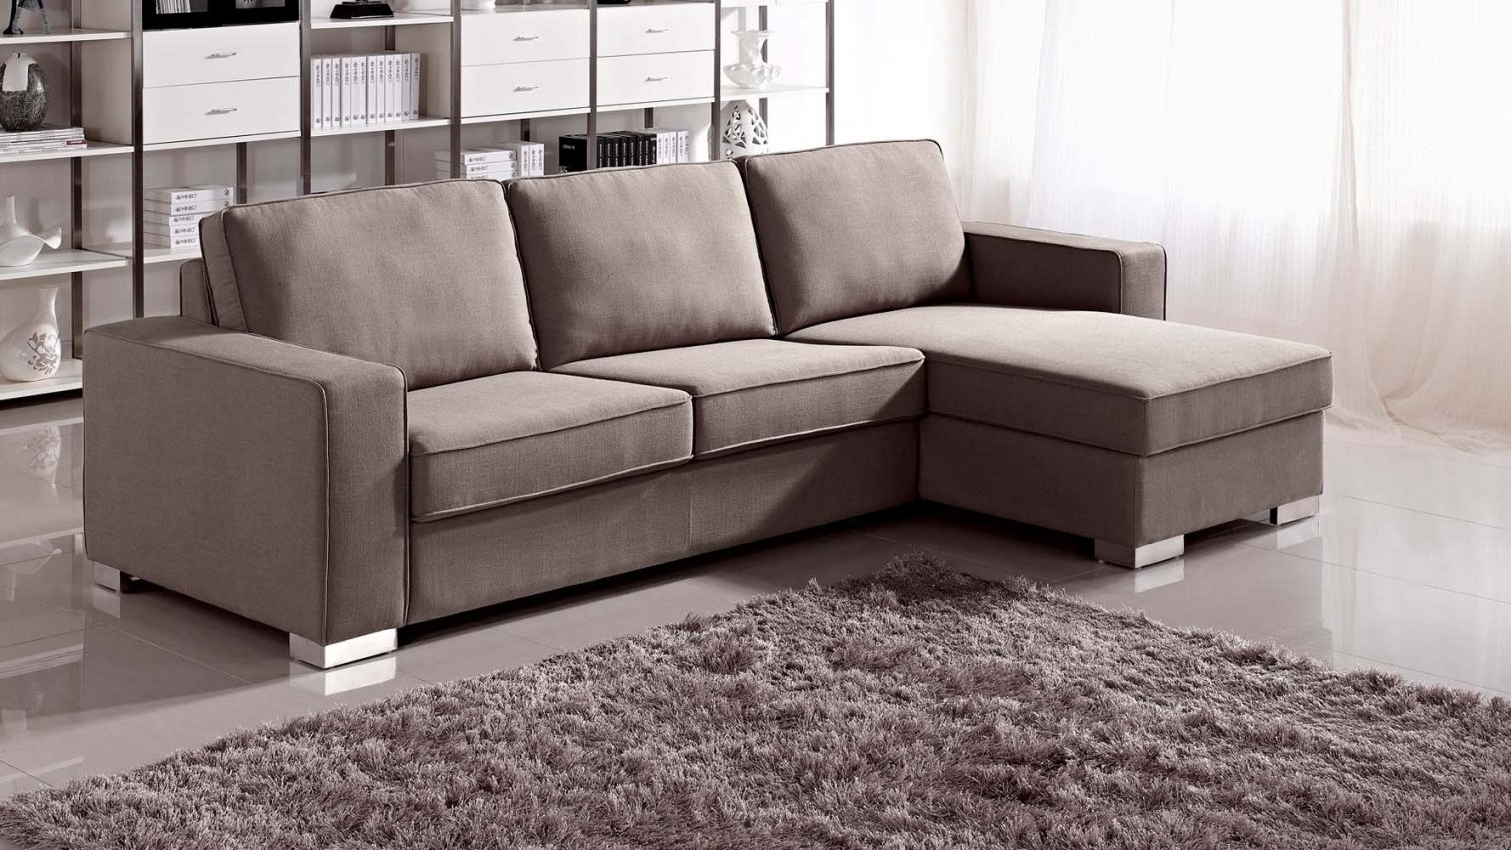 Favorite Sectional Sleeper Sofa With Chaise 29 In Sofa Design Ideas With Regard To Chaise Sectional Sleepers (View 6 of 15)